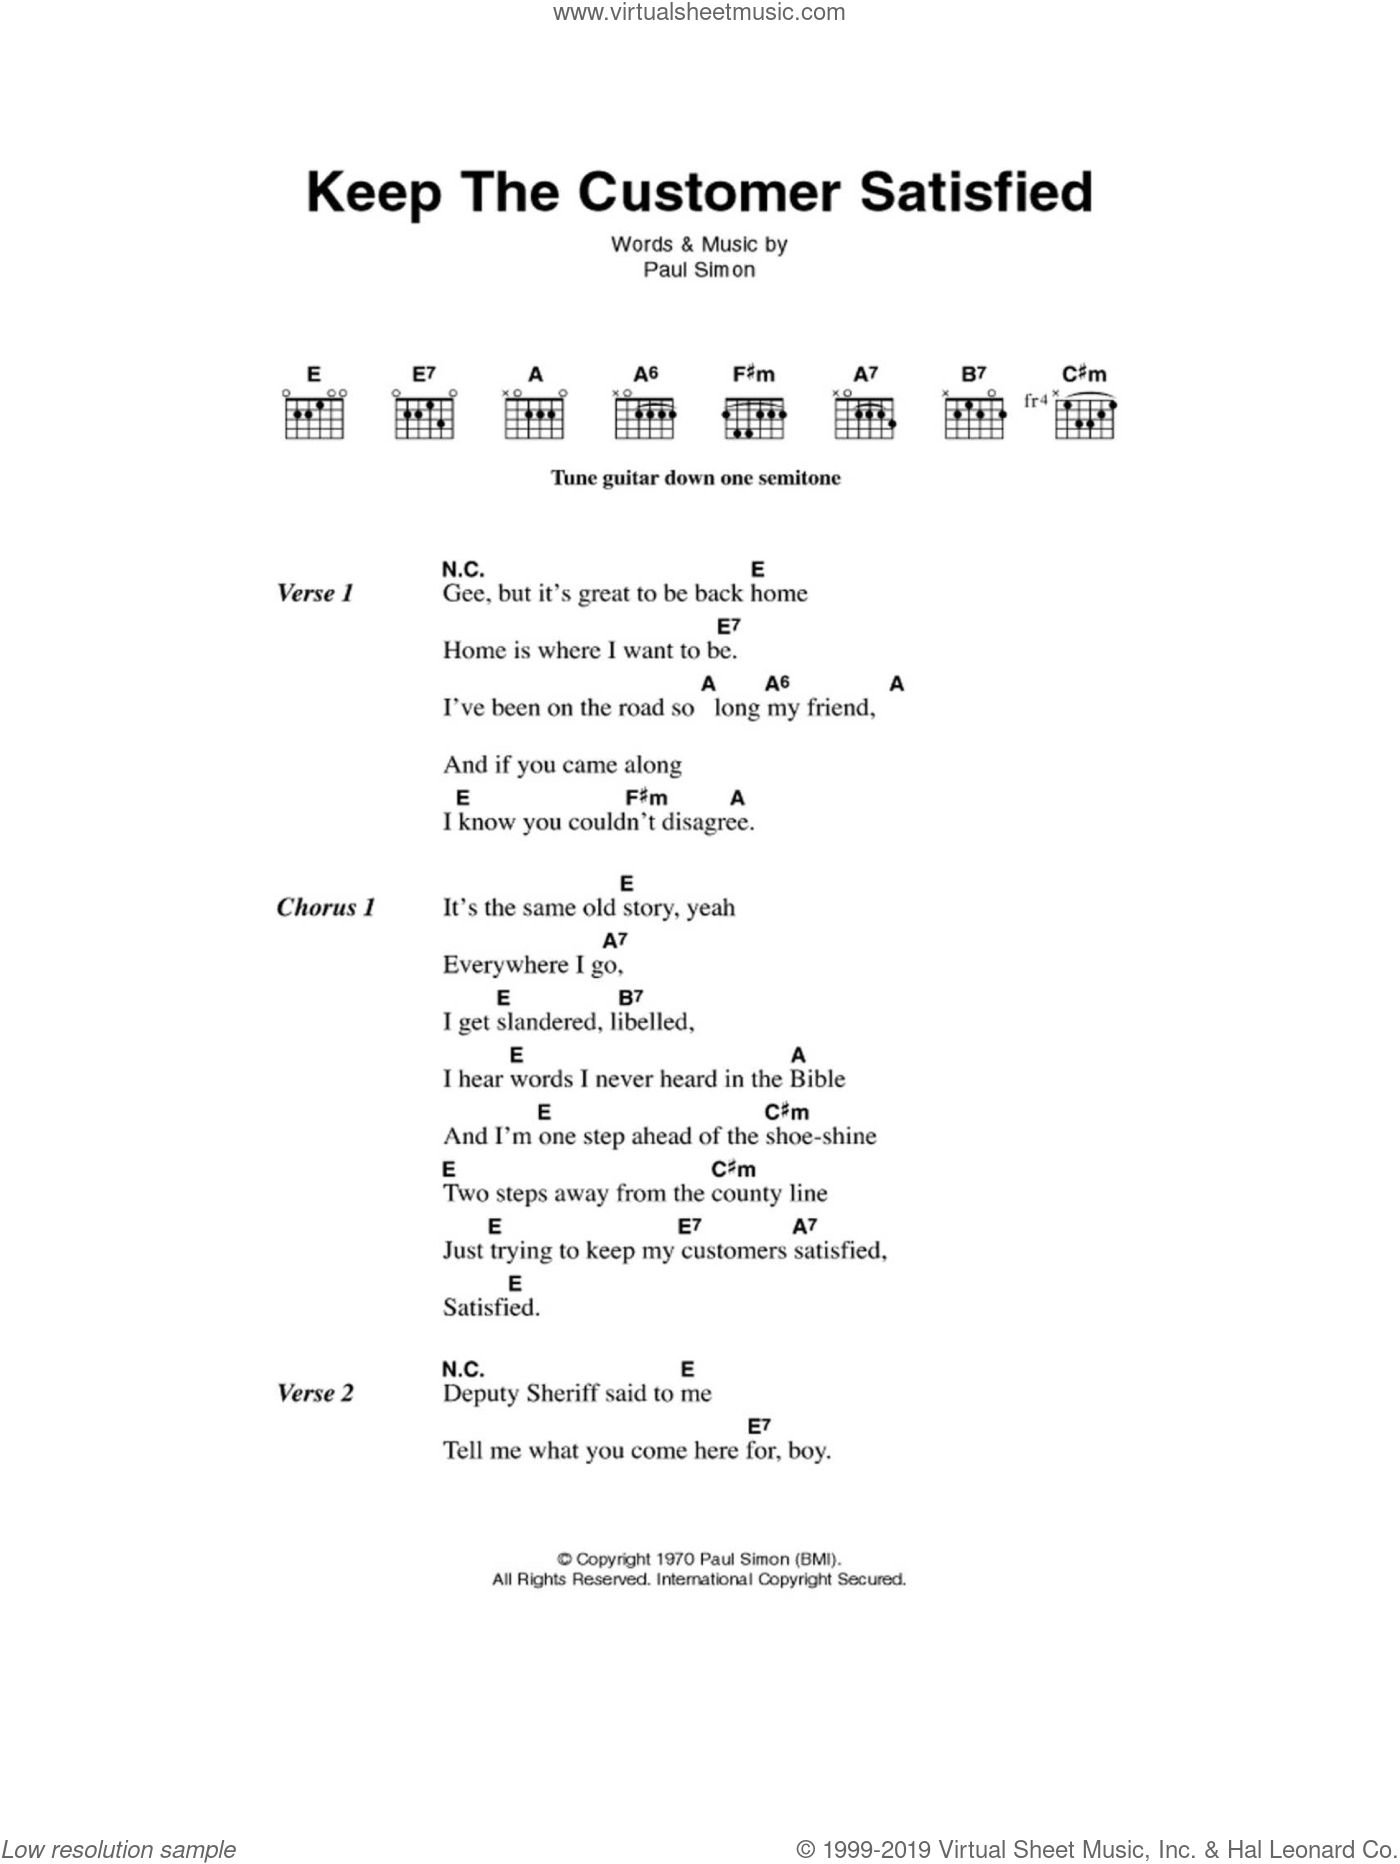 Keep The Customer Satisfied sheet music for guitar (chords) by Paul Simon